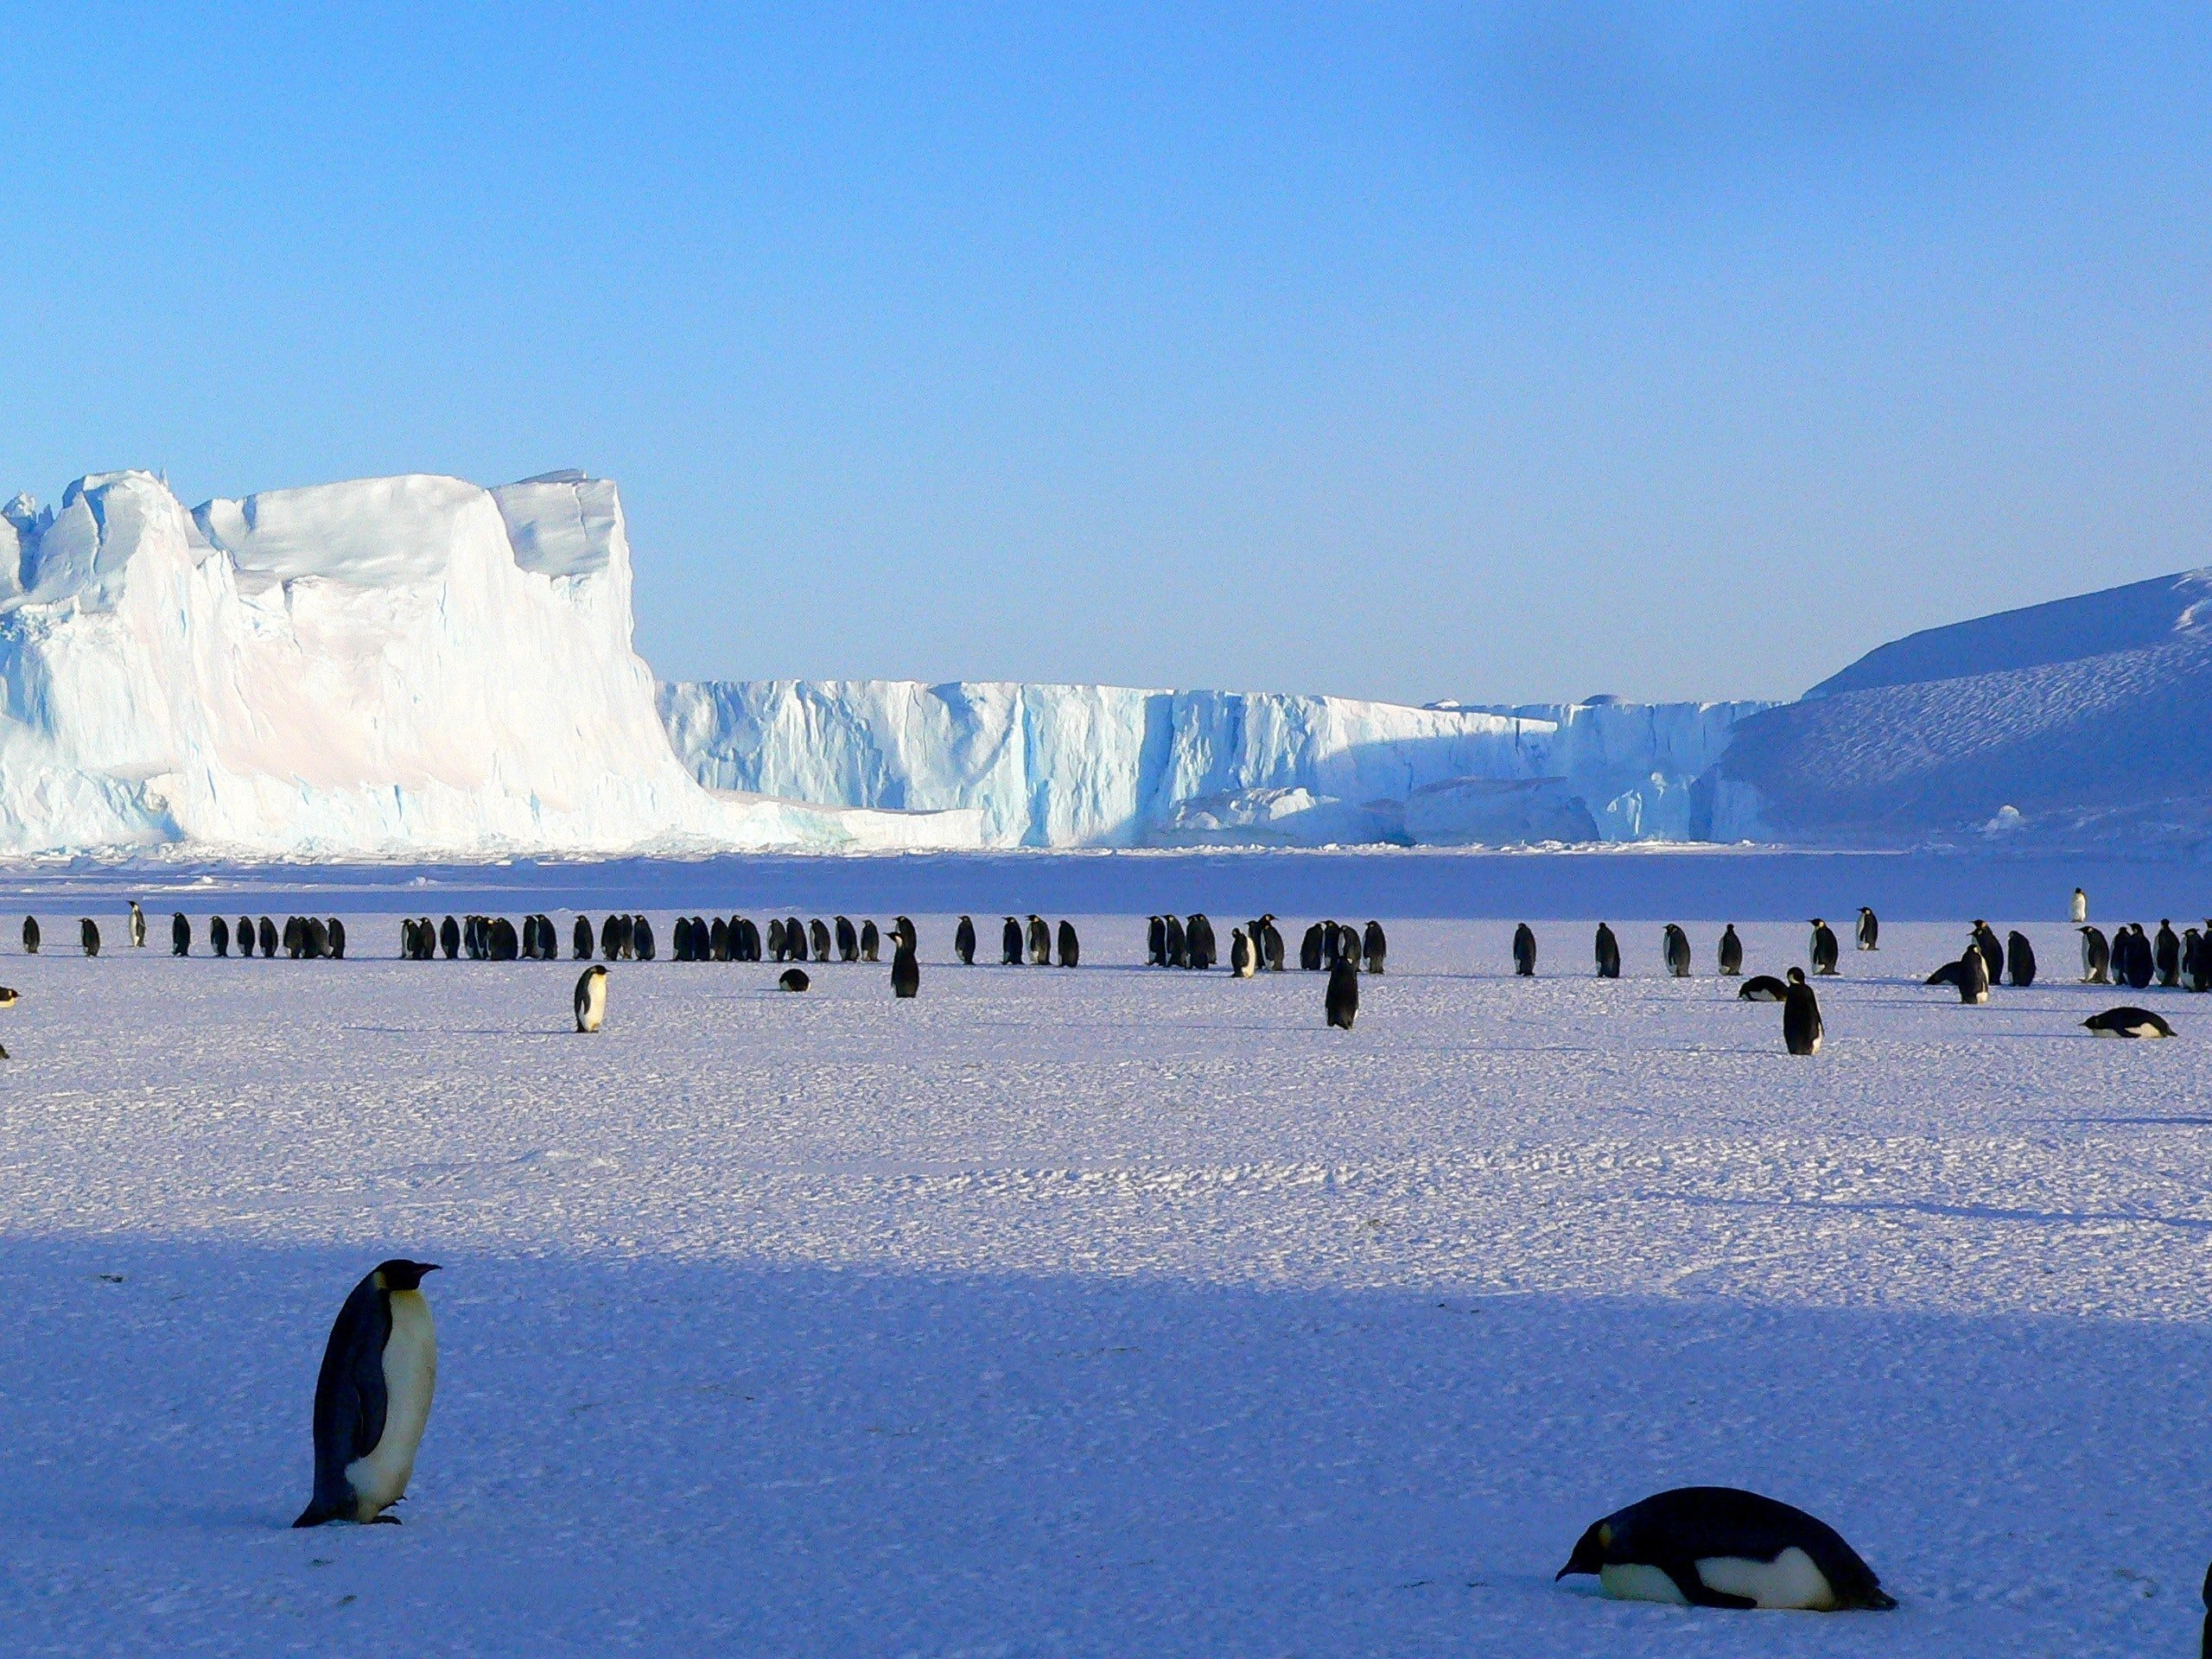 A group of Antarctic Penguins